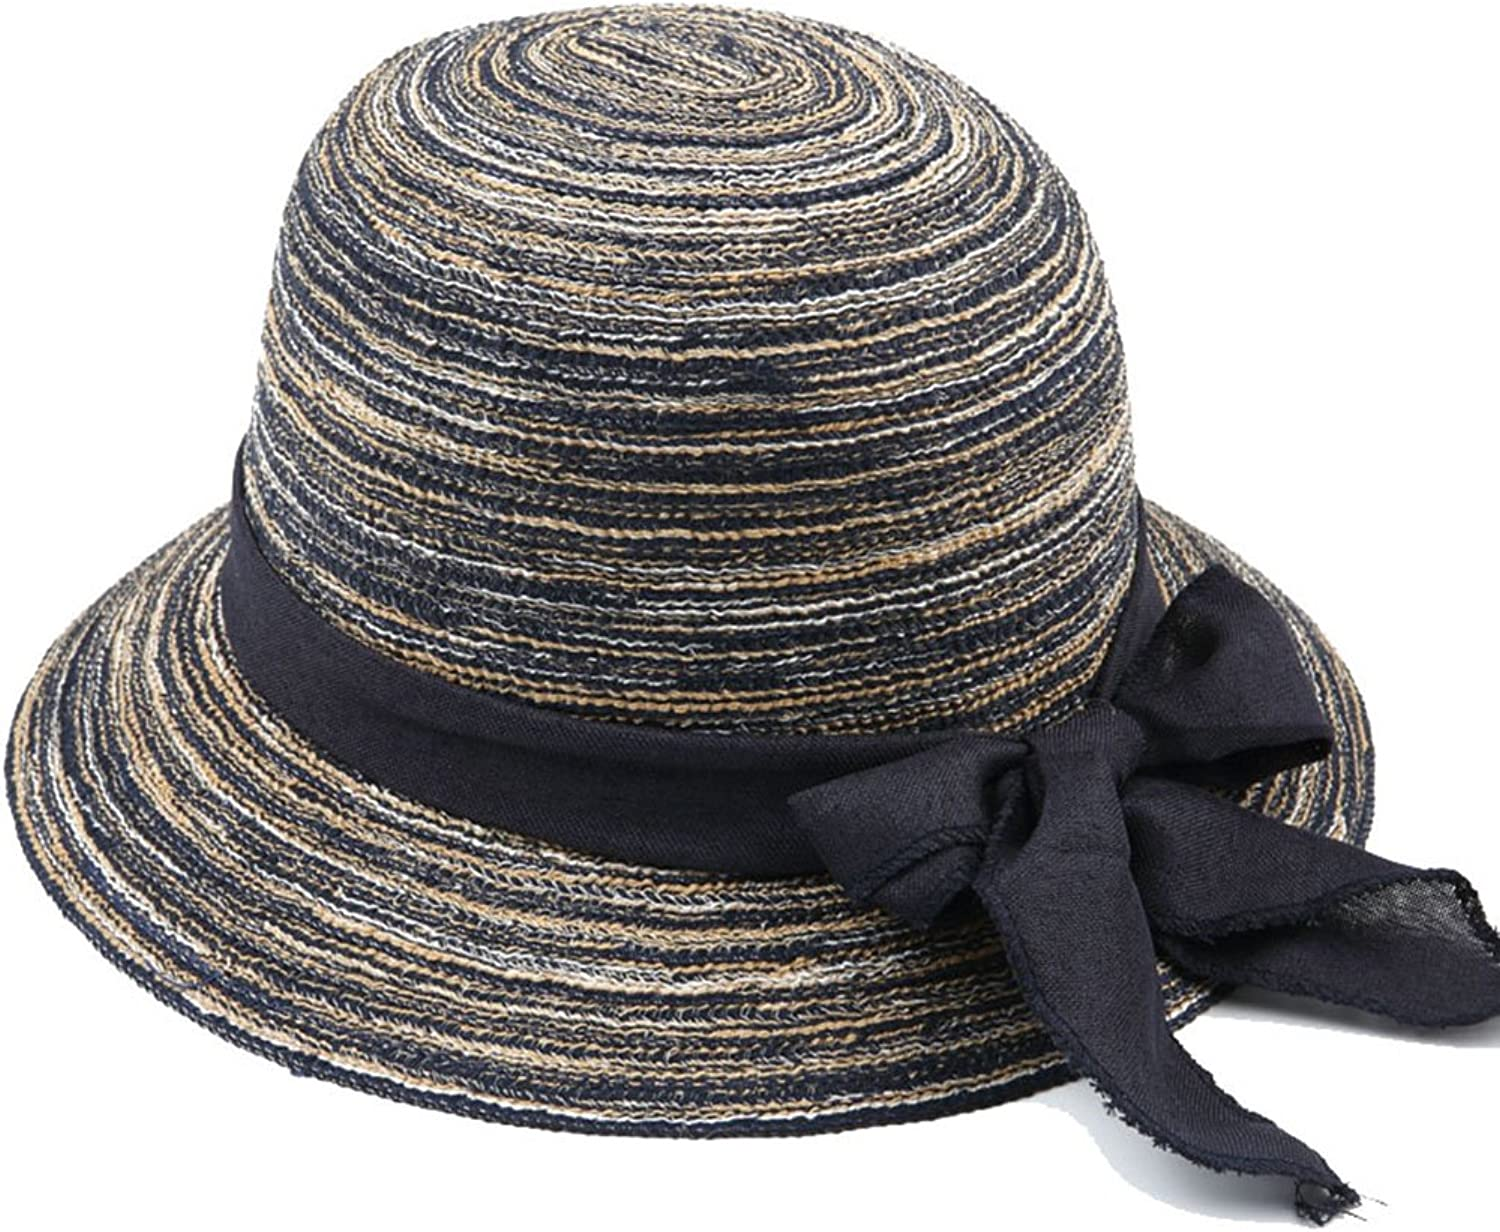 YD Hat Summer Hat, Sun Hat Women Summer Elderly People Cotton Yarn Sunscreen Foldable Breathable, 5 colors Optional    (color   4 )